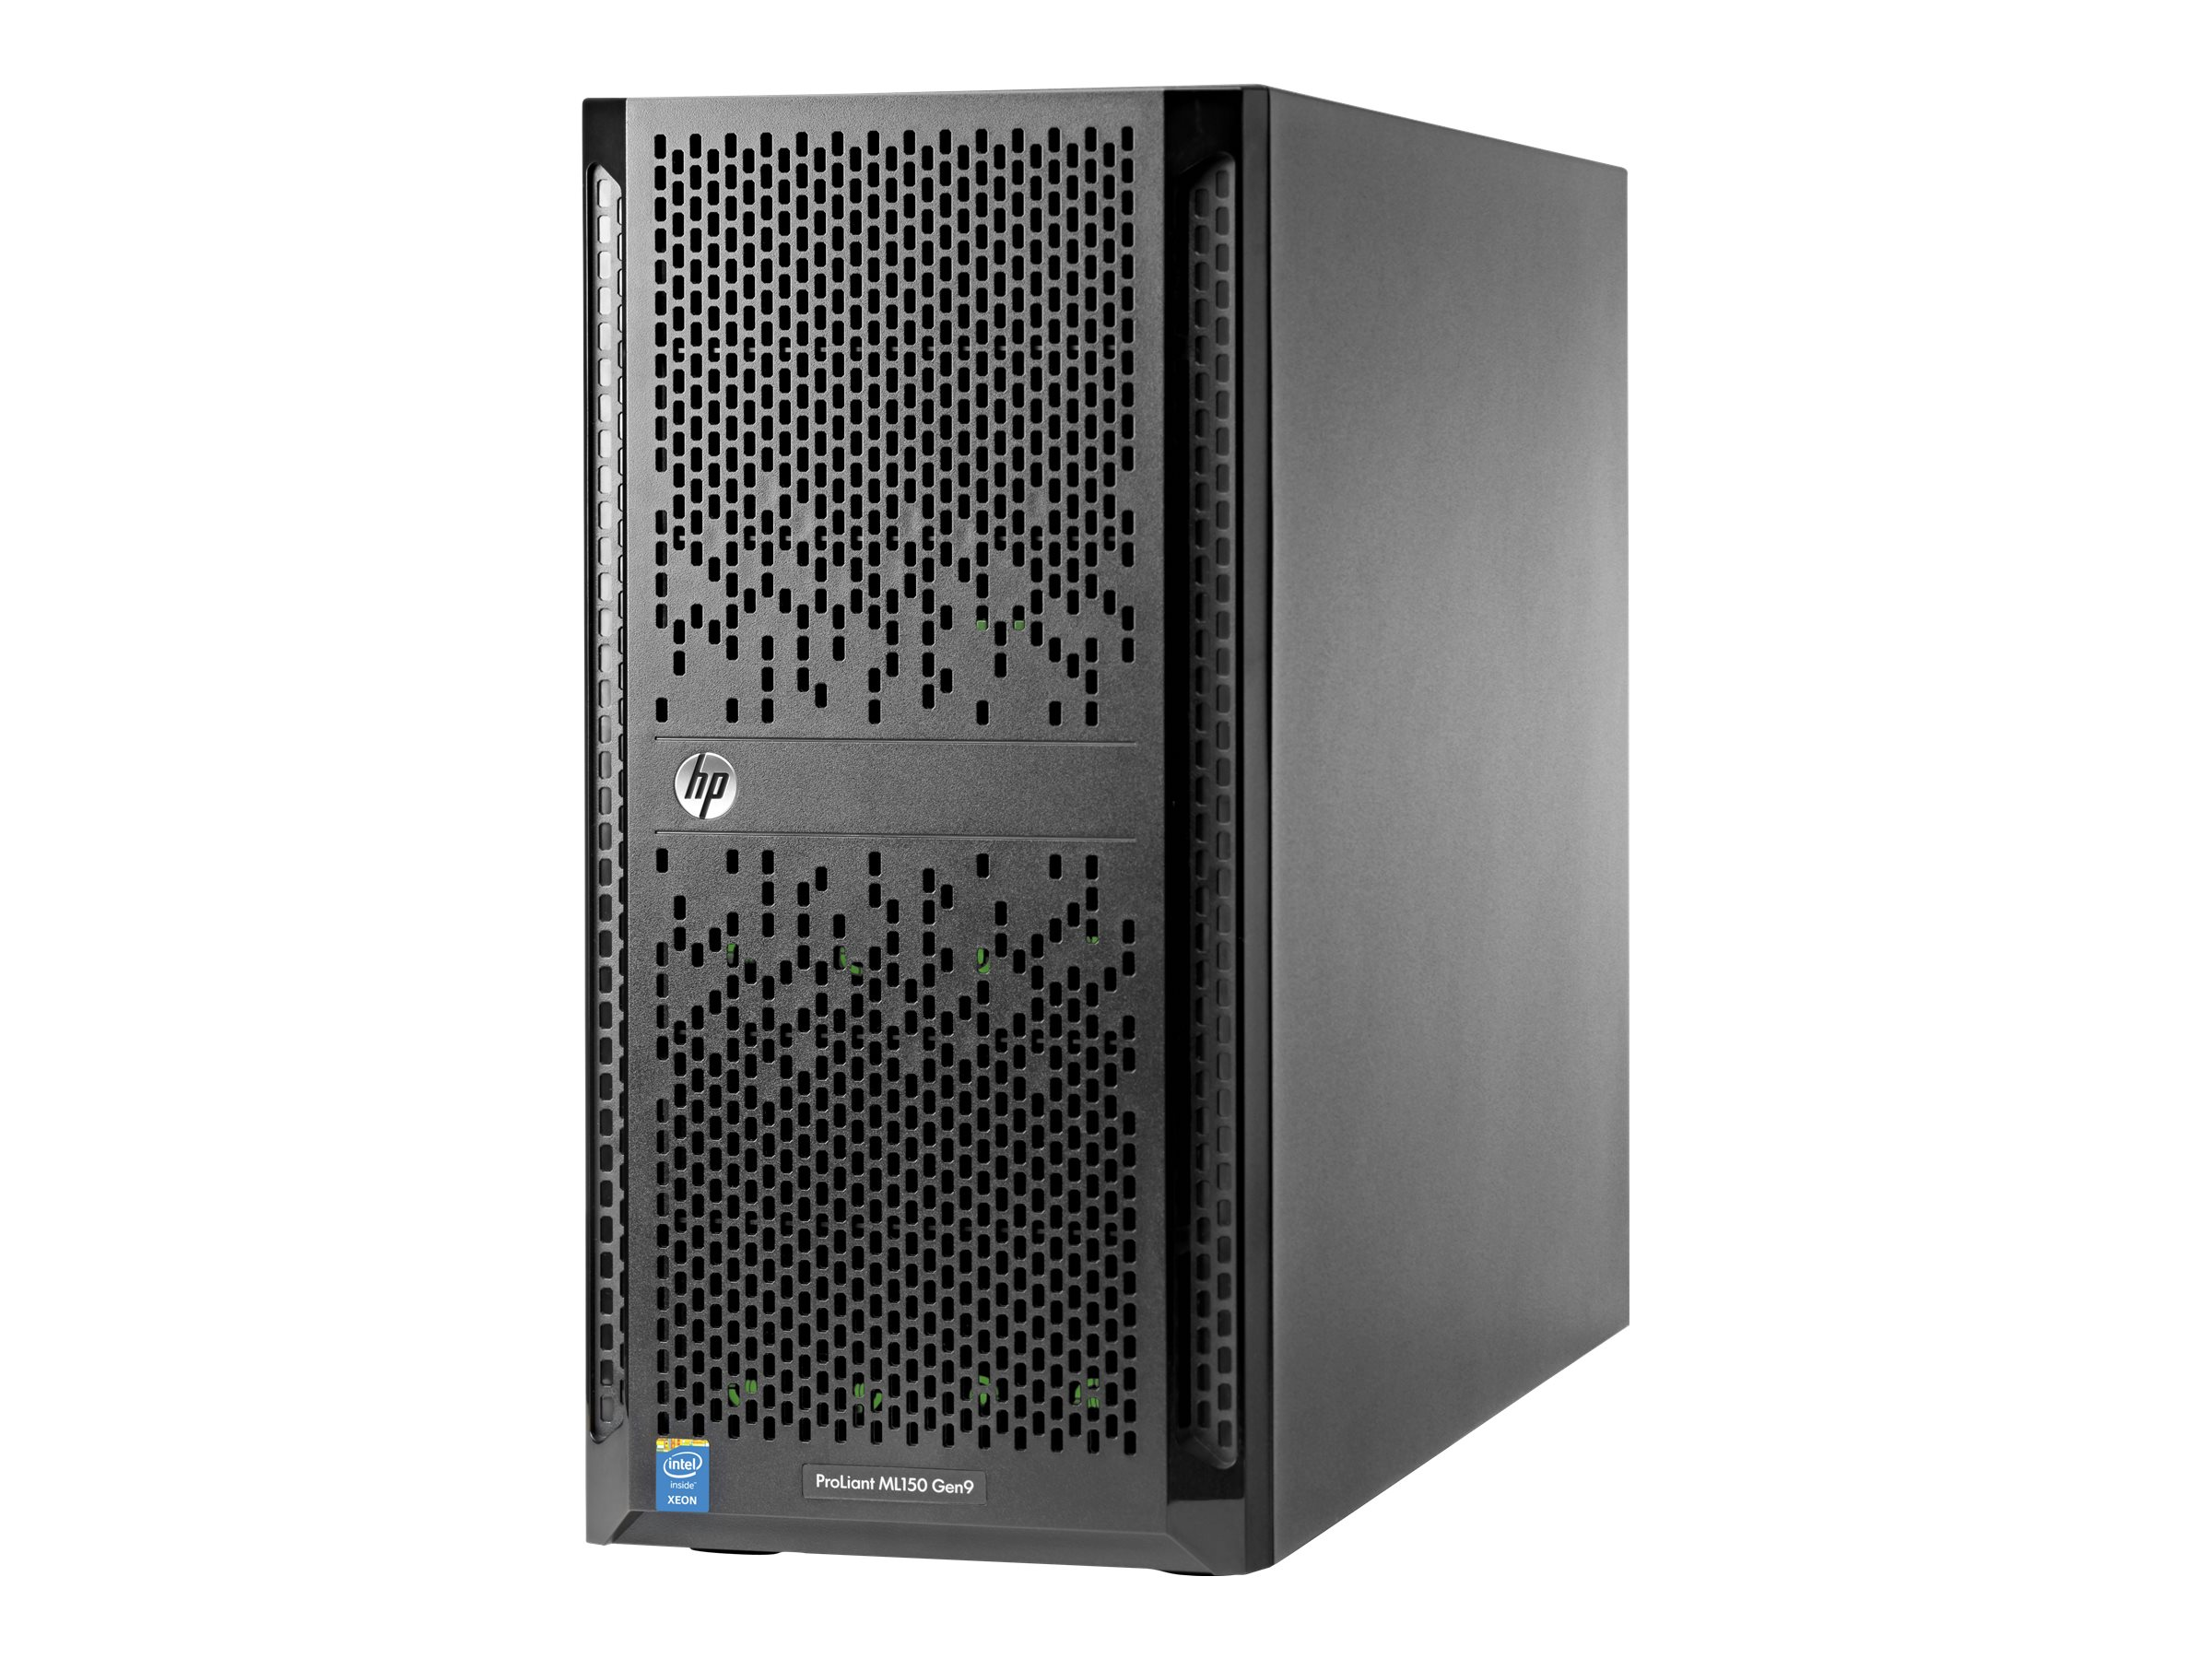 HPE ProLiant ML150 Gen9 Intel 2.1GHz Xeon